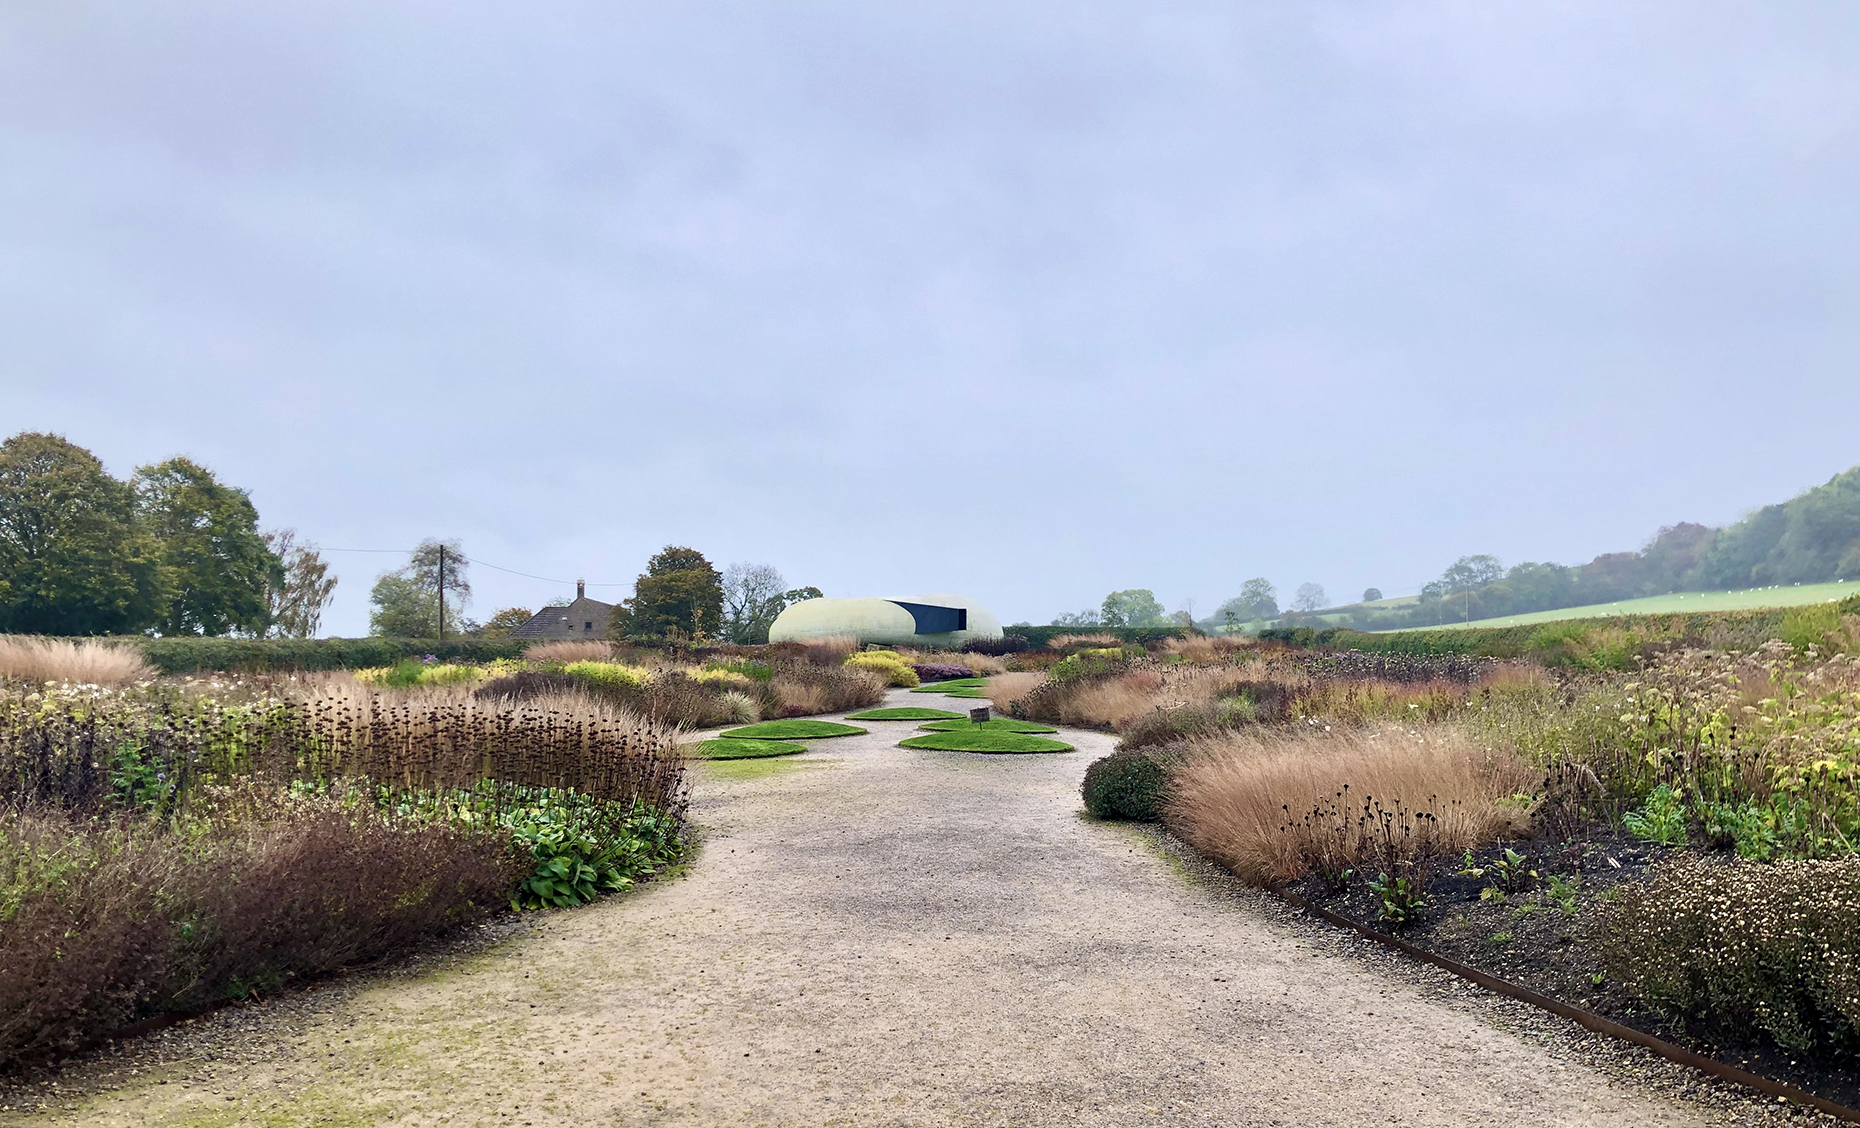 Hauser & Wirth gallery in Bruton (Image: Herry Lawford/Flickr/CC-BY-2.0)